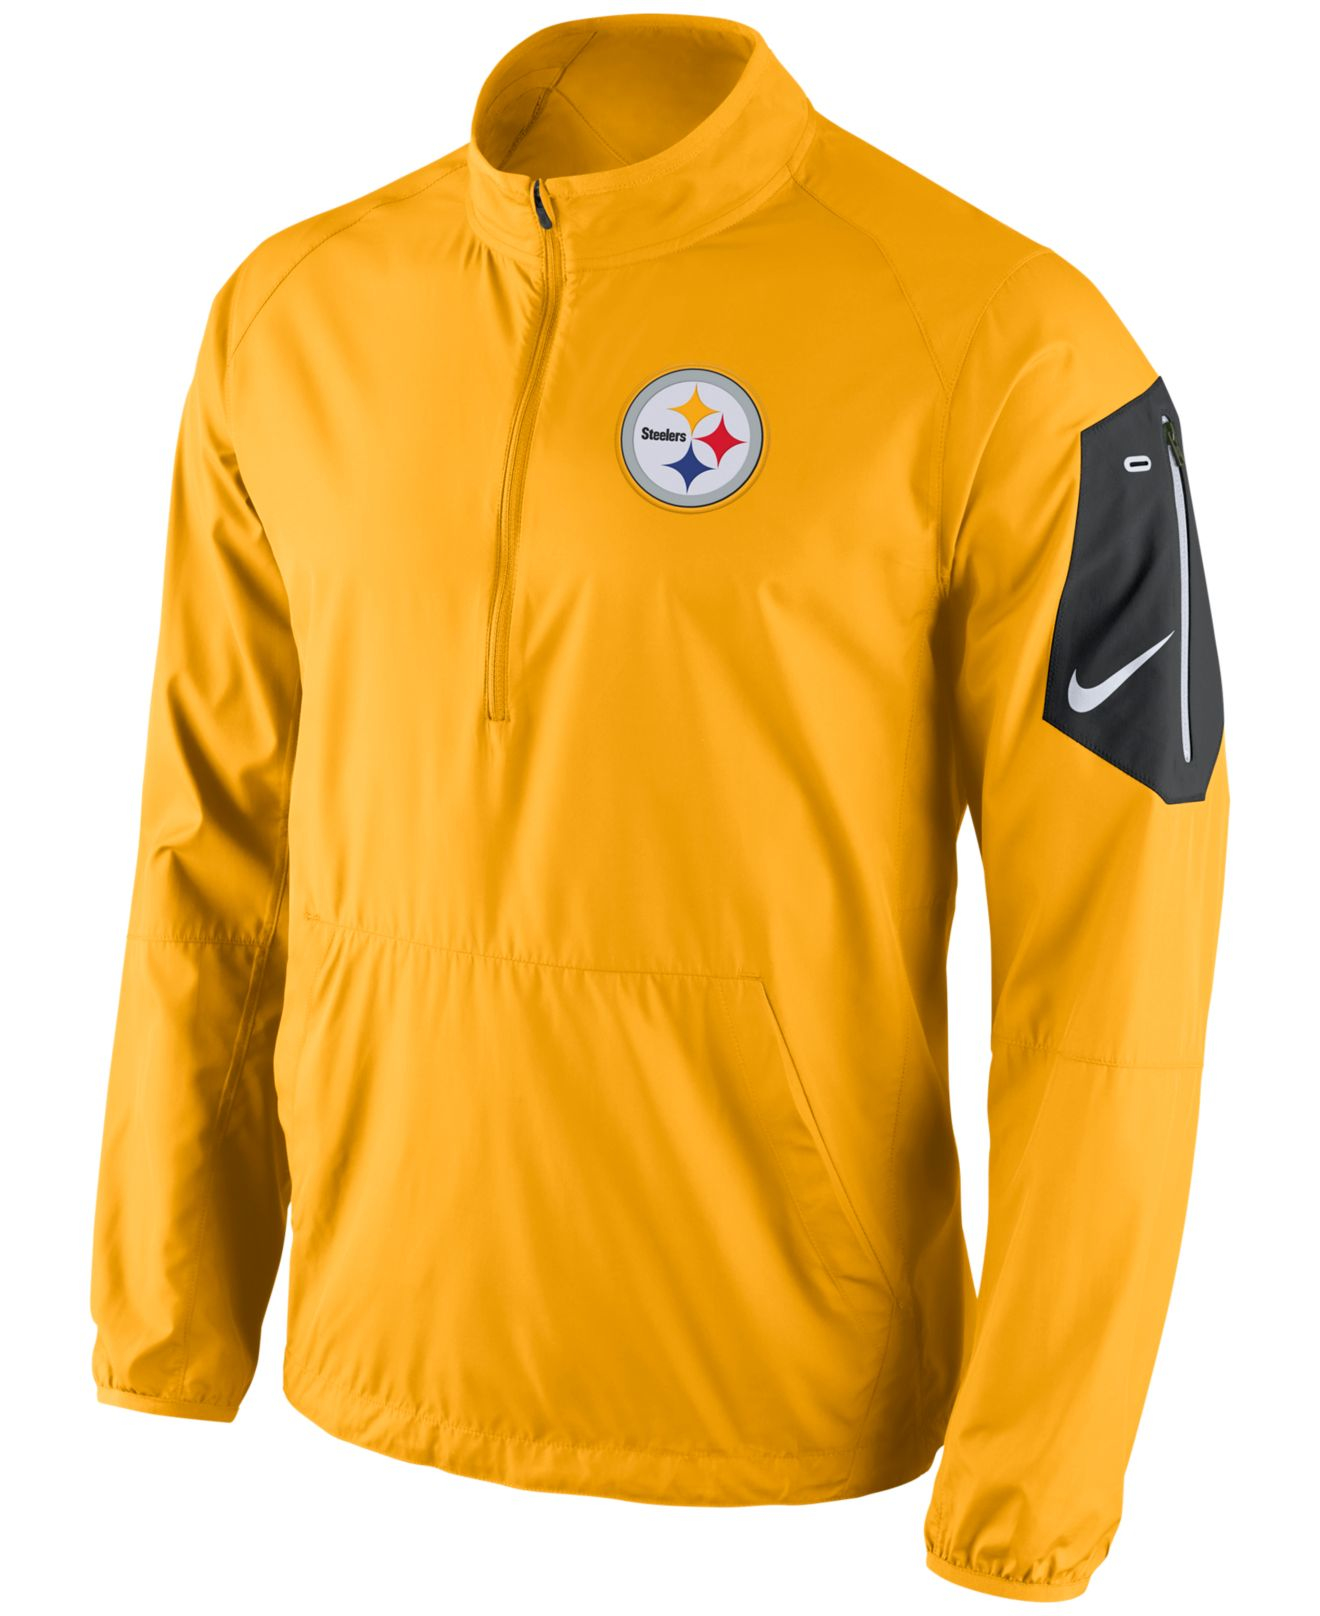 792322325a6 ... T-shirts 21 Nike Mens Pittsburgh Steelers Lockdown Half-zip Jacket in  Ye .